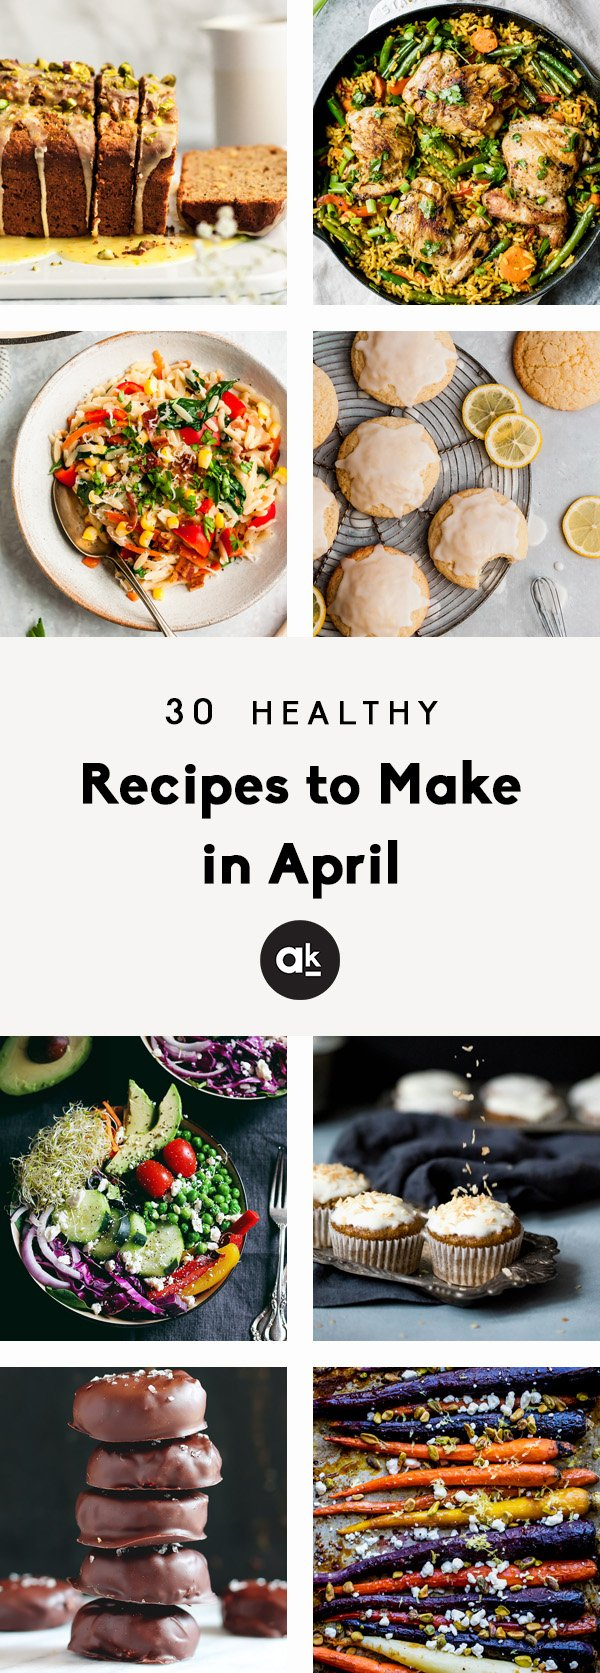 collage of seasonal recipes to make in april